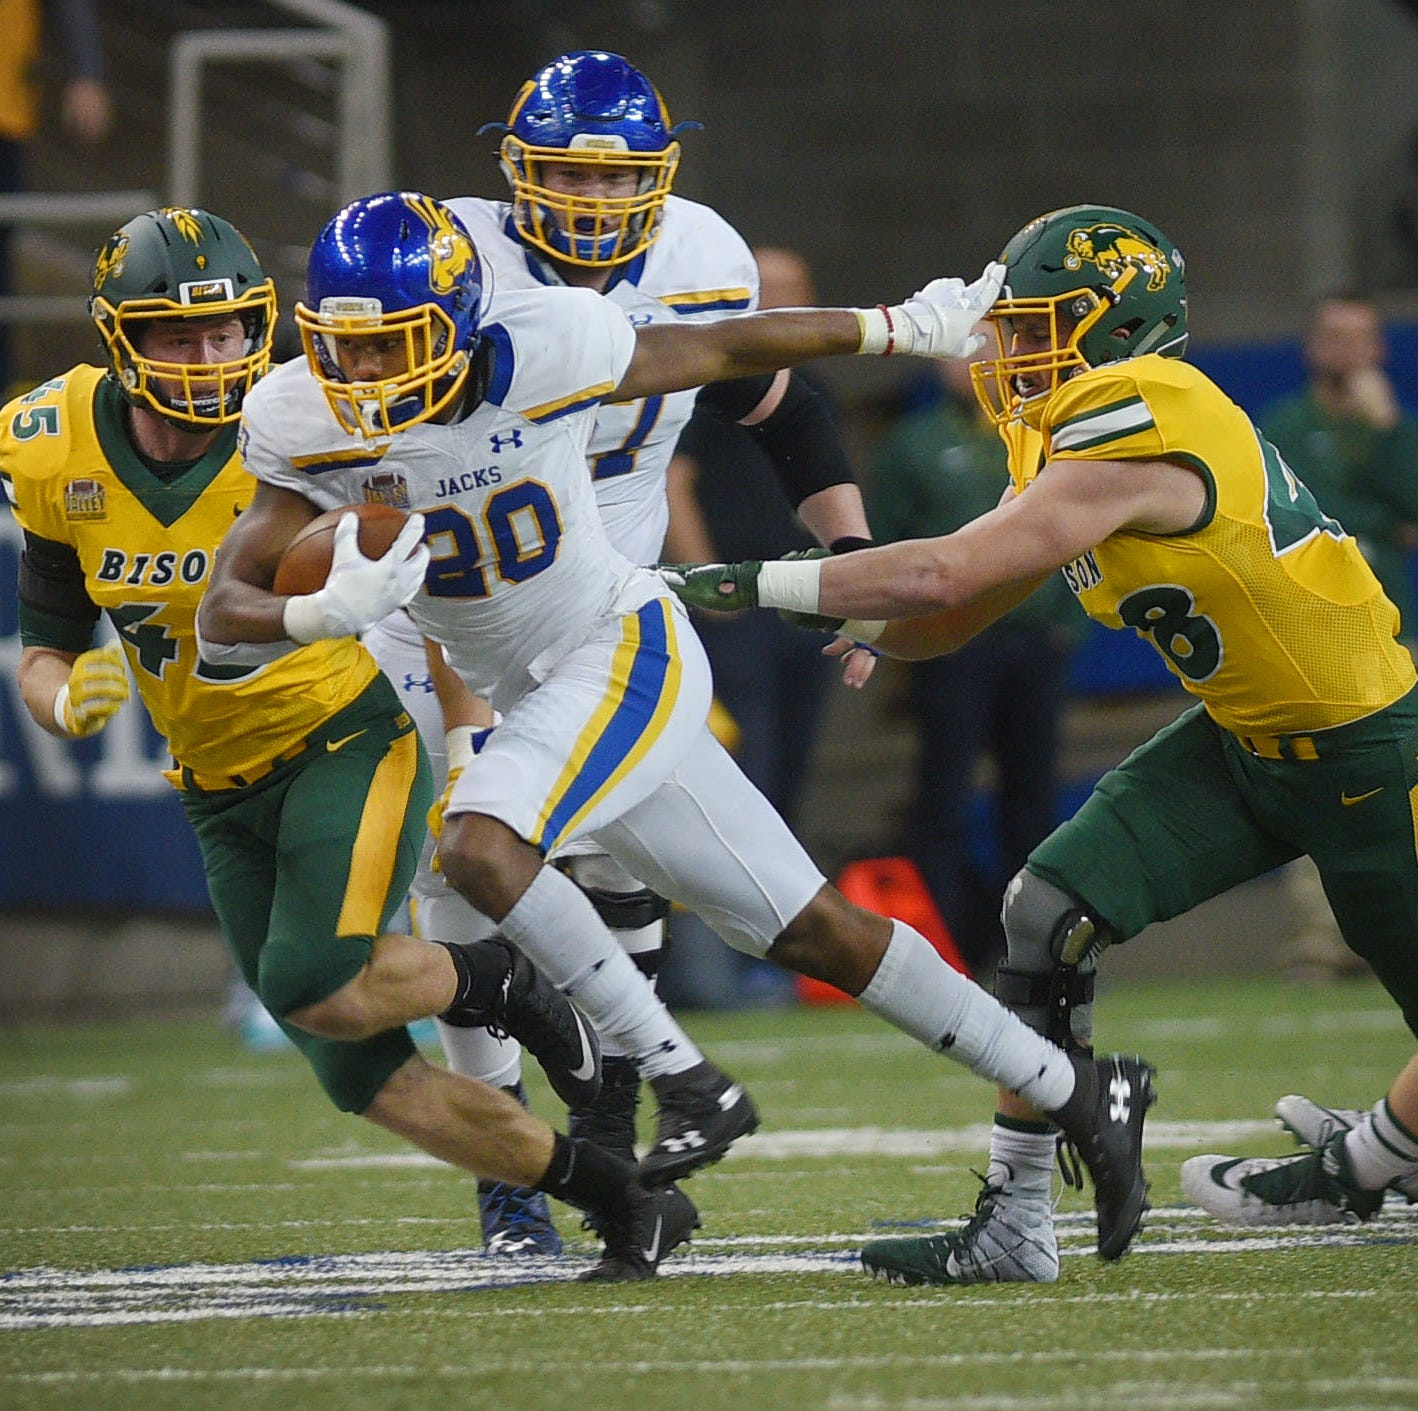 SDSU's Pierre Strong, Jr. goes against NDSU defense during the game at the Fargodome Friday, Dec. 14, in the FCS playoffs in Fargo.